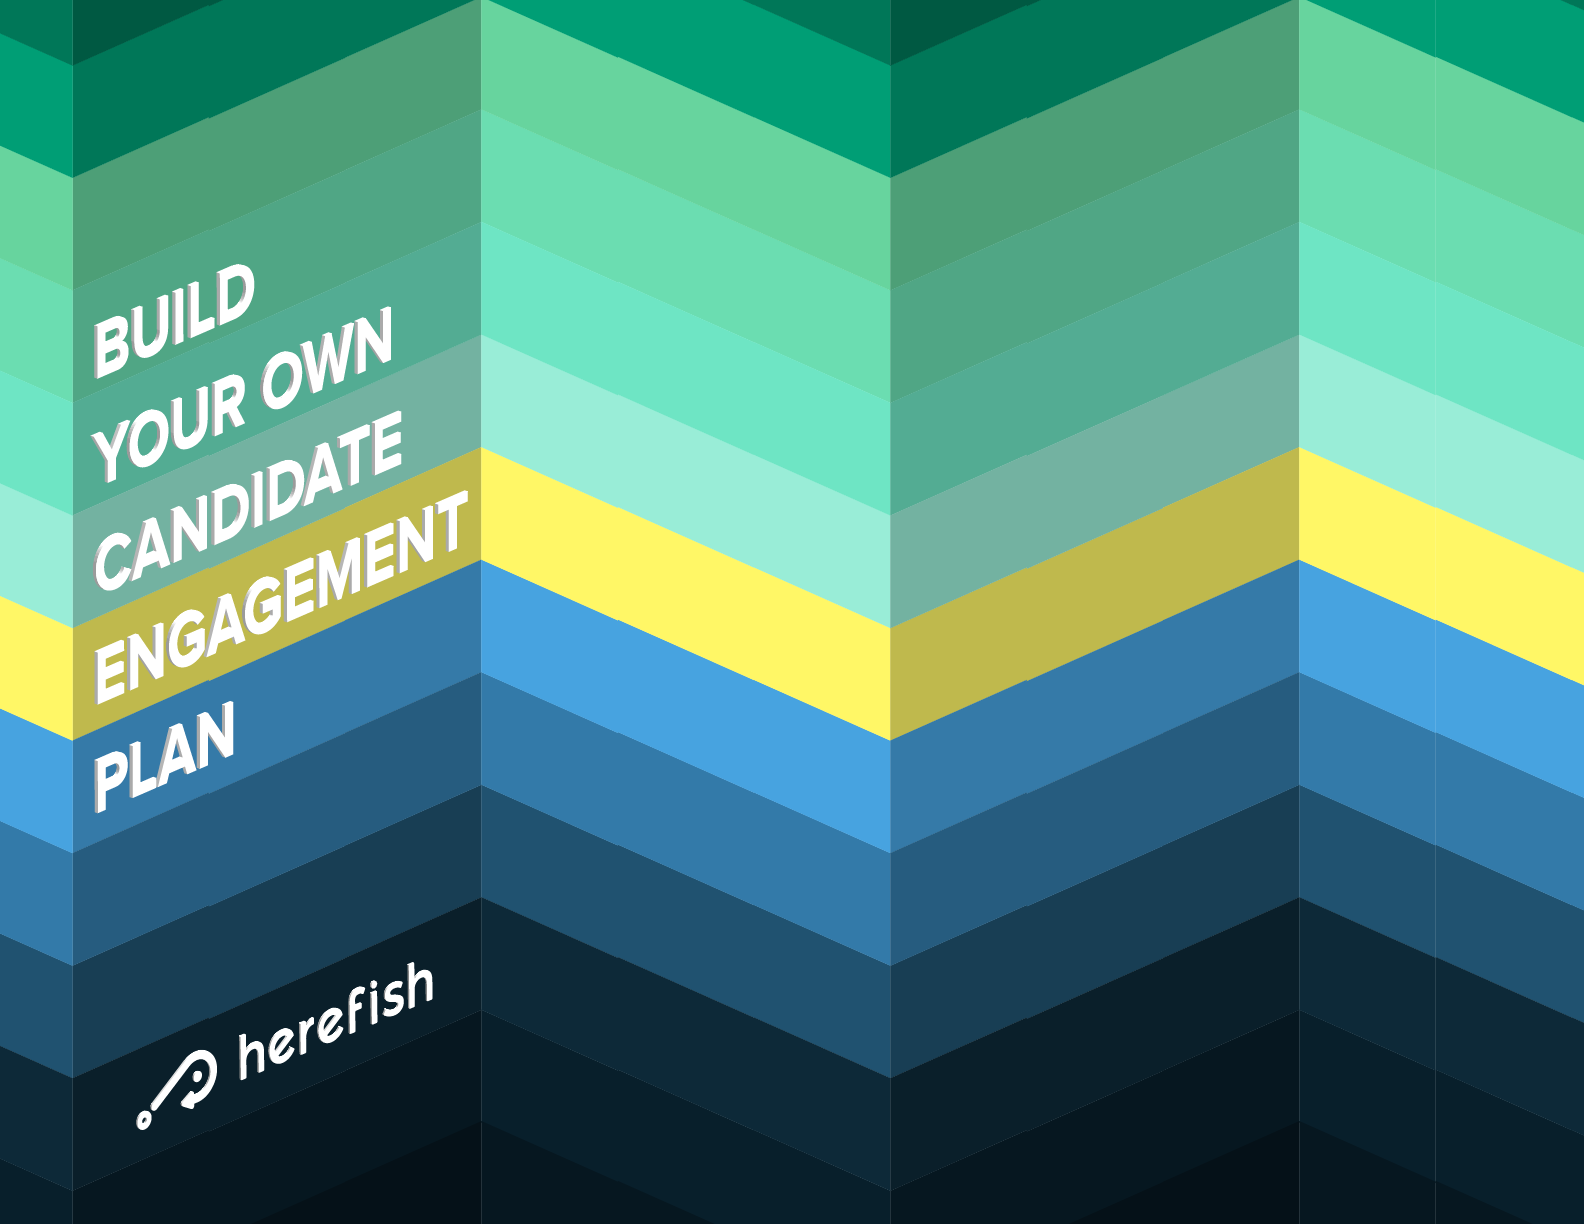 candidate-engagement-plan@2x